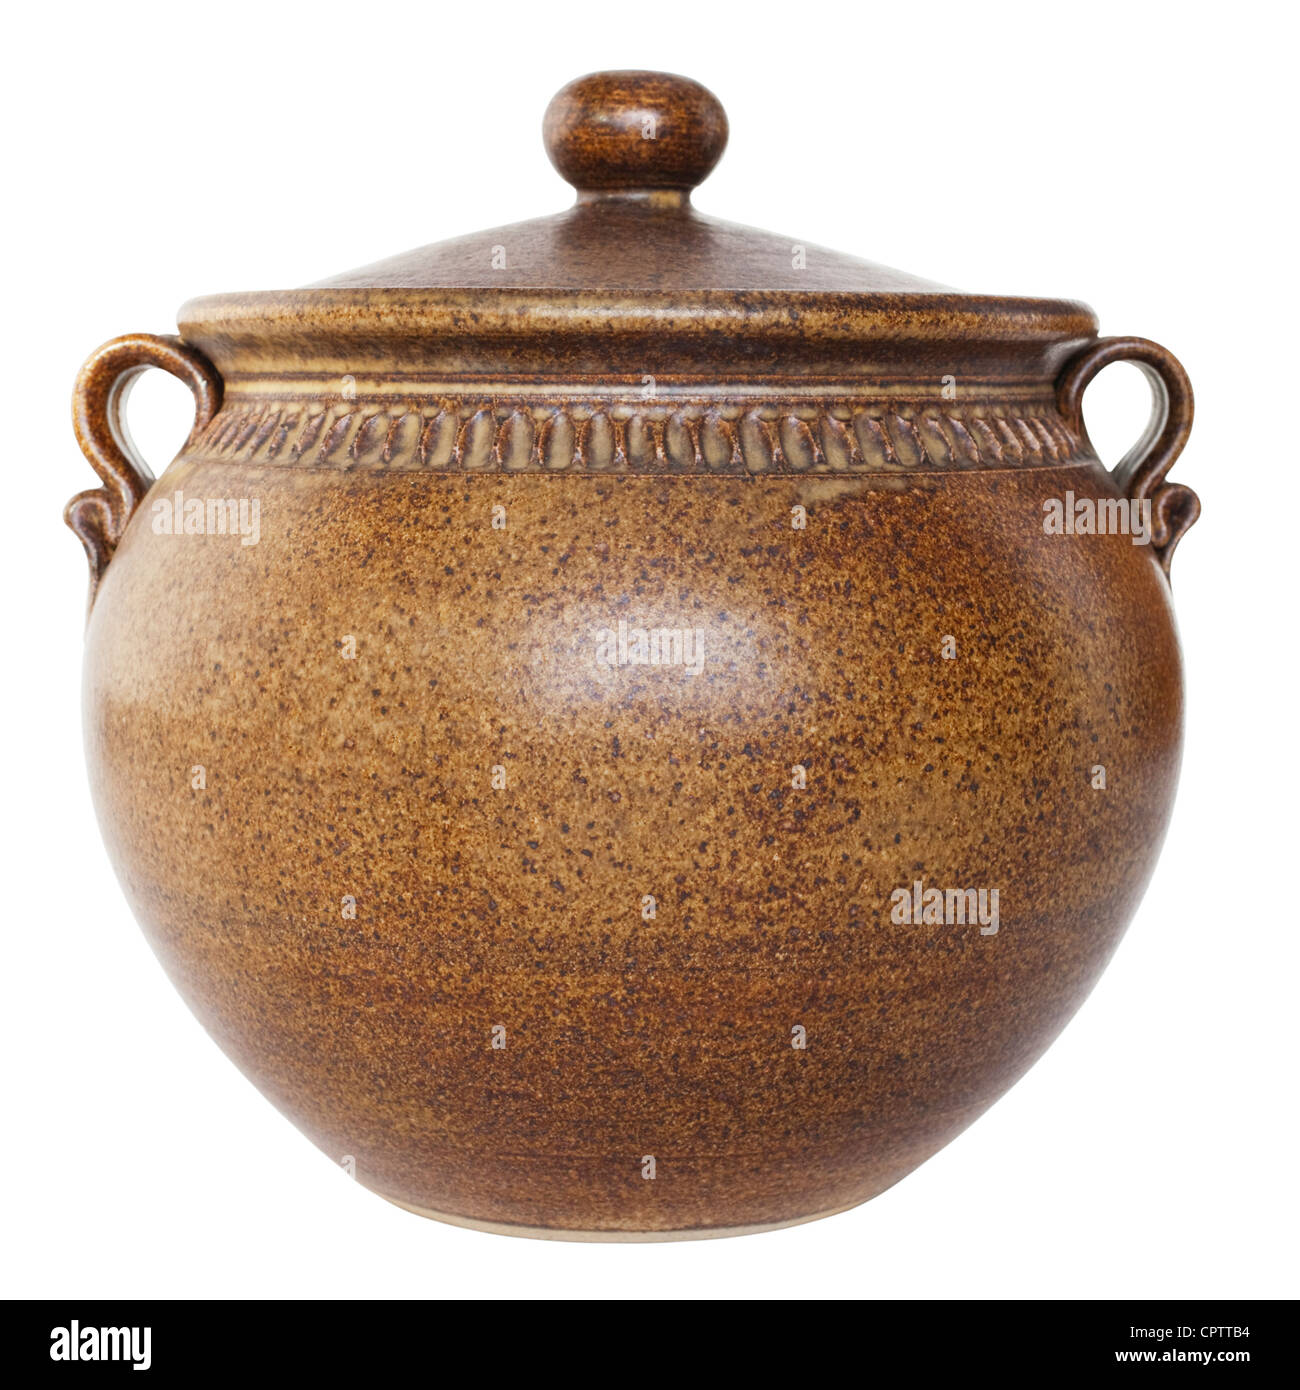 Traditional brown pottery casserole dish isolated on white. - Stock Image